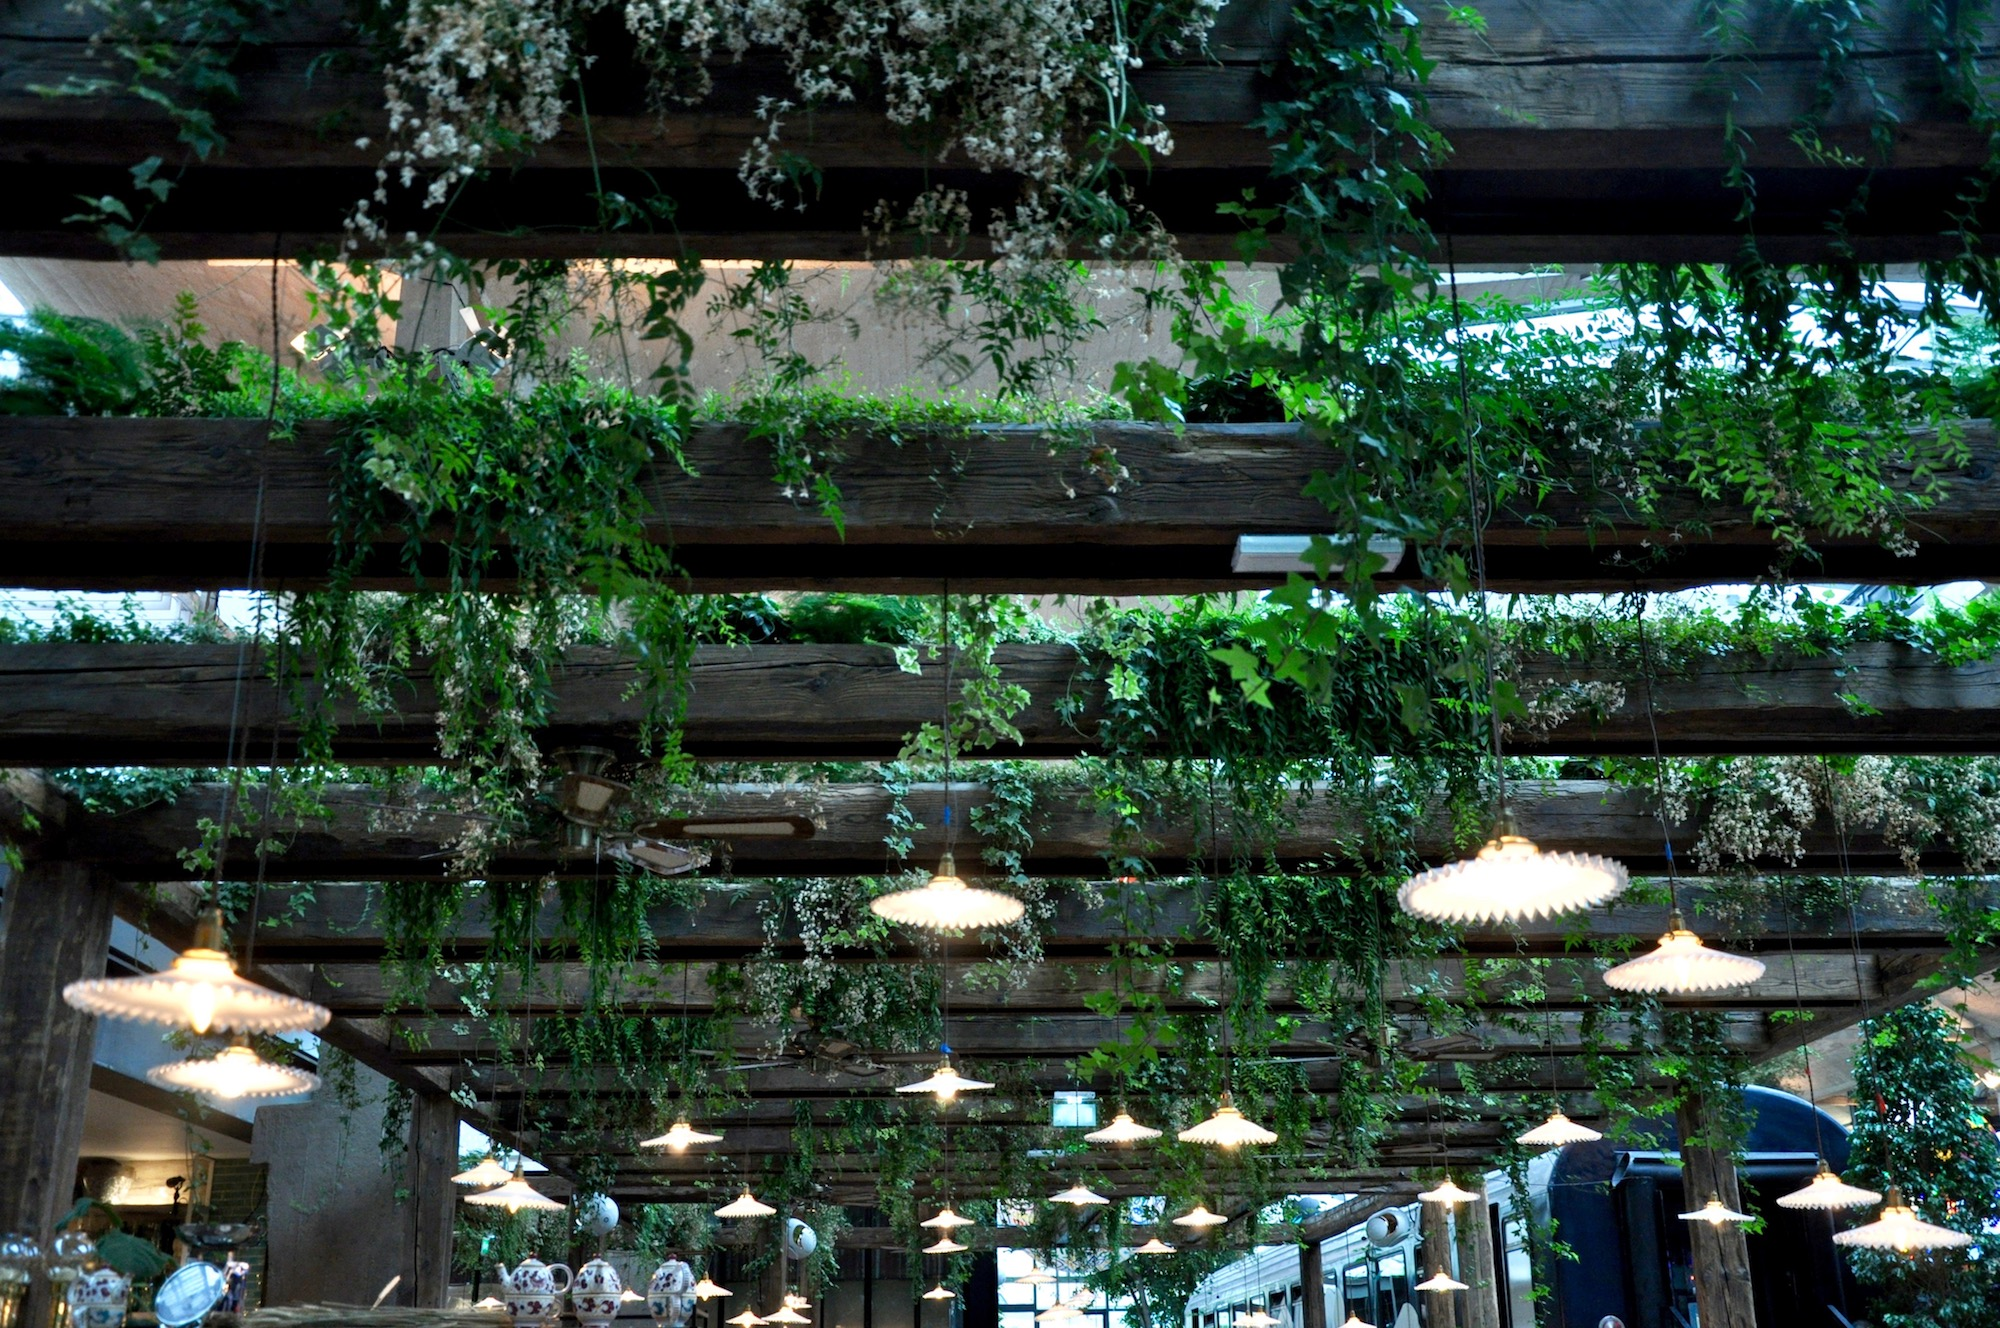 Paris restaurant, Big Mamma Group's La Felicita, comes with lots of green plants hanging from the ceiling, adding a feeling of wellbeing.